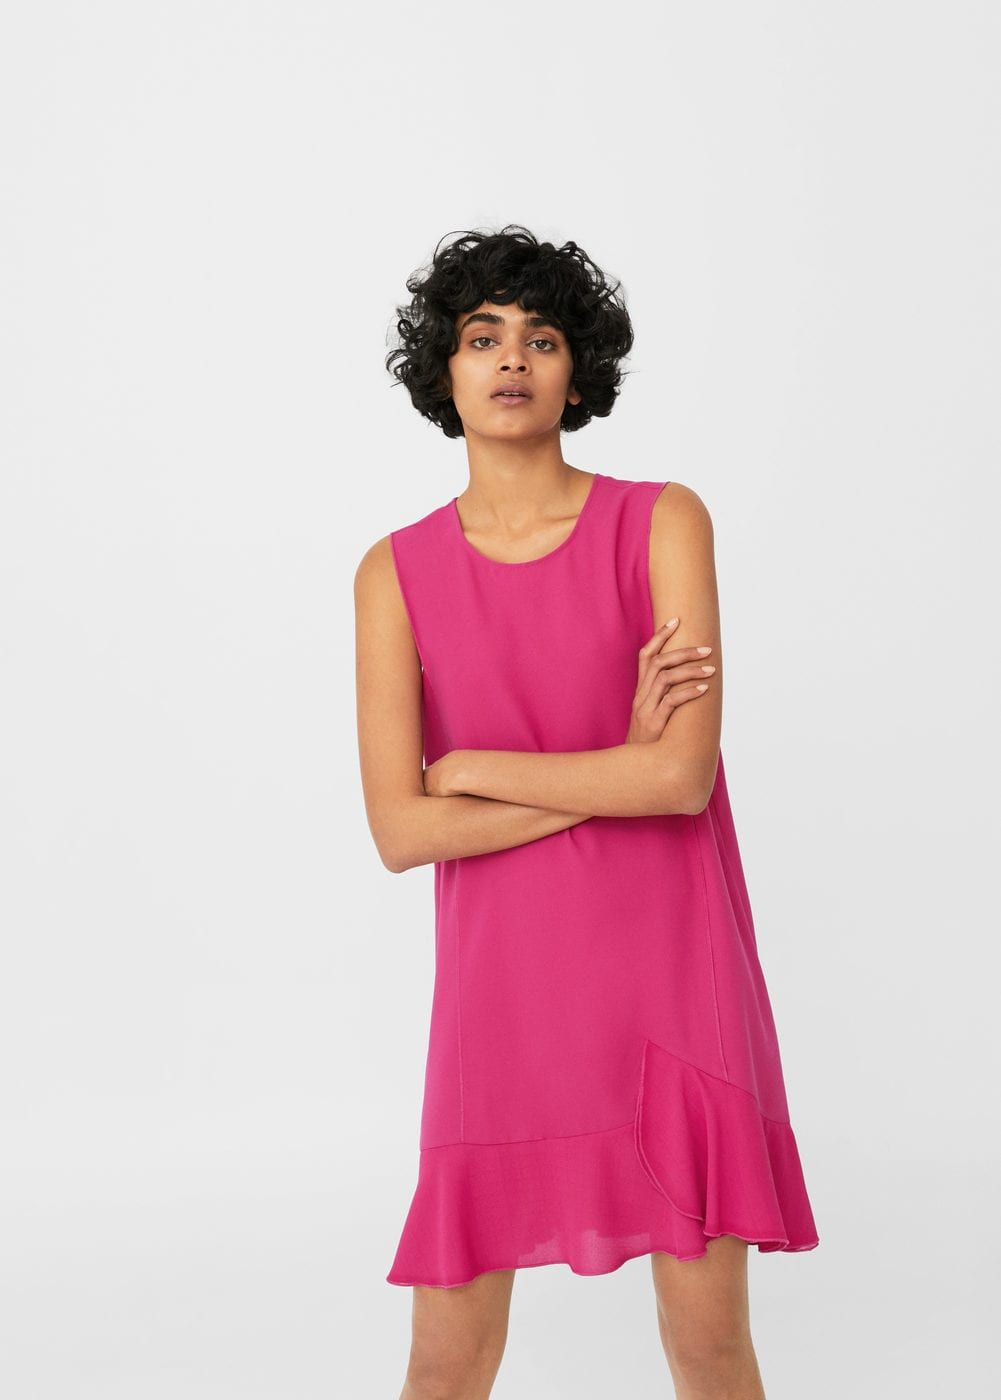 Fashion week Dresses Zara usa pictures for girls